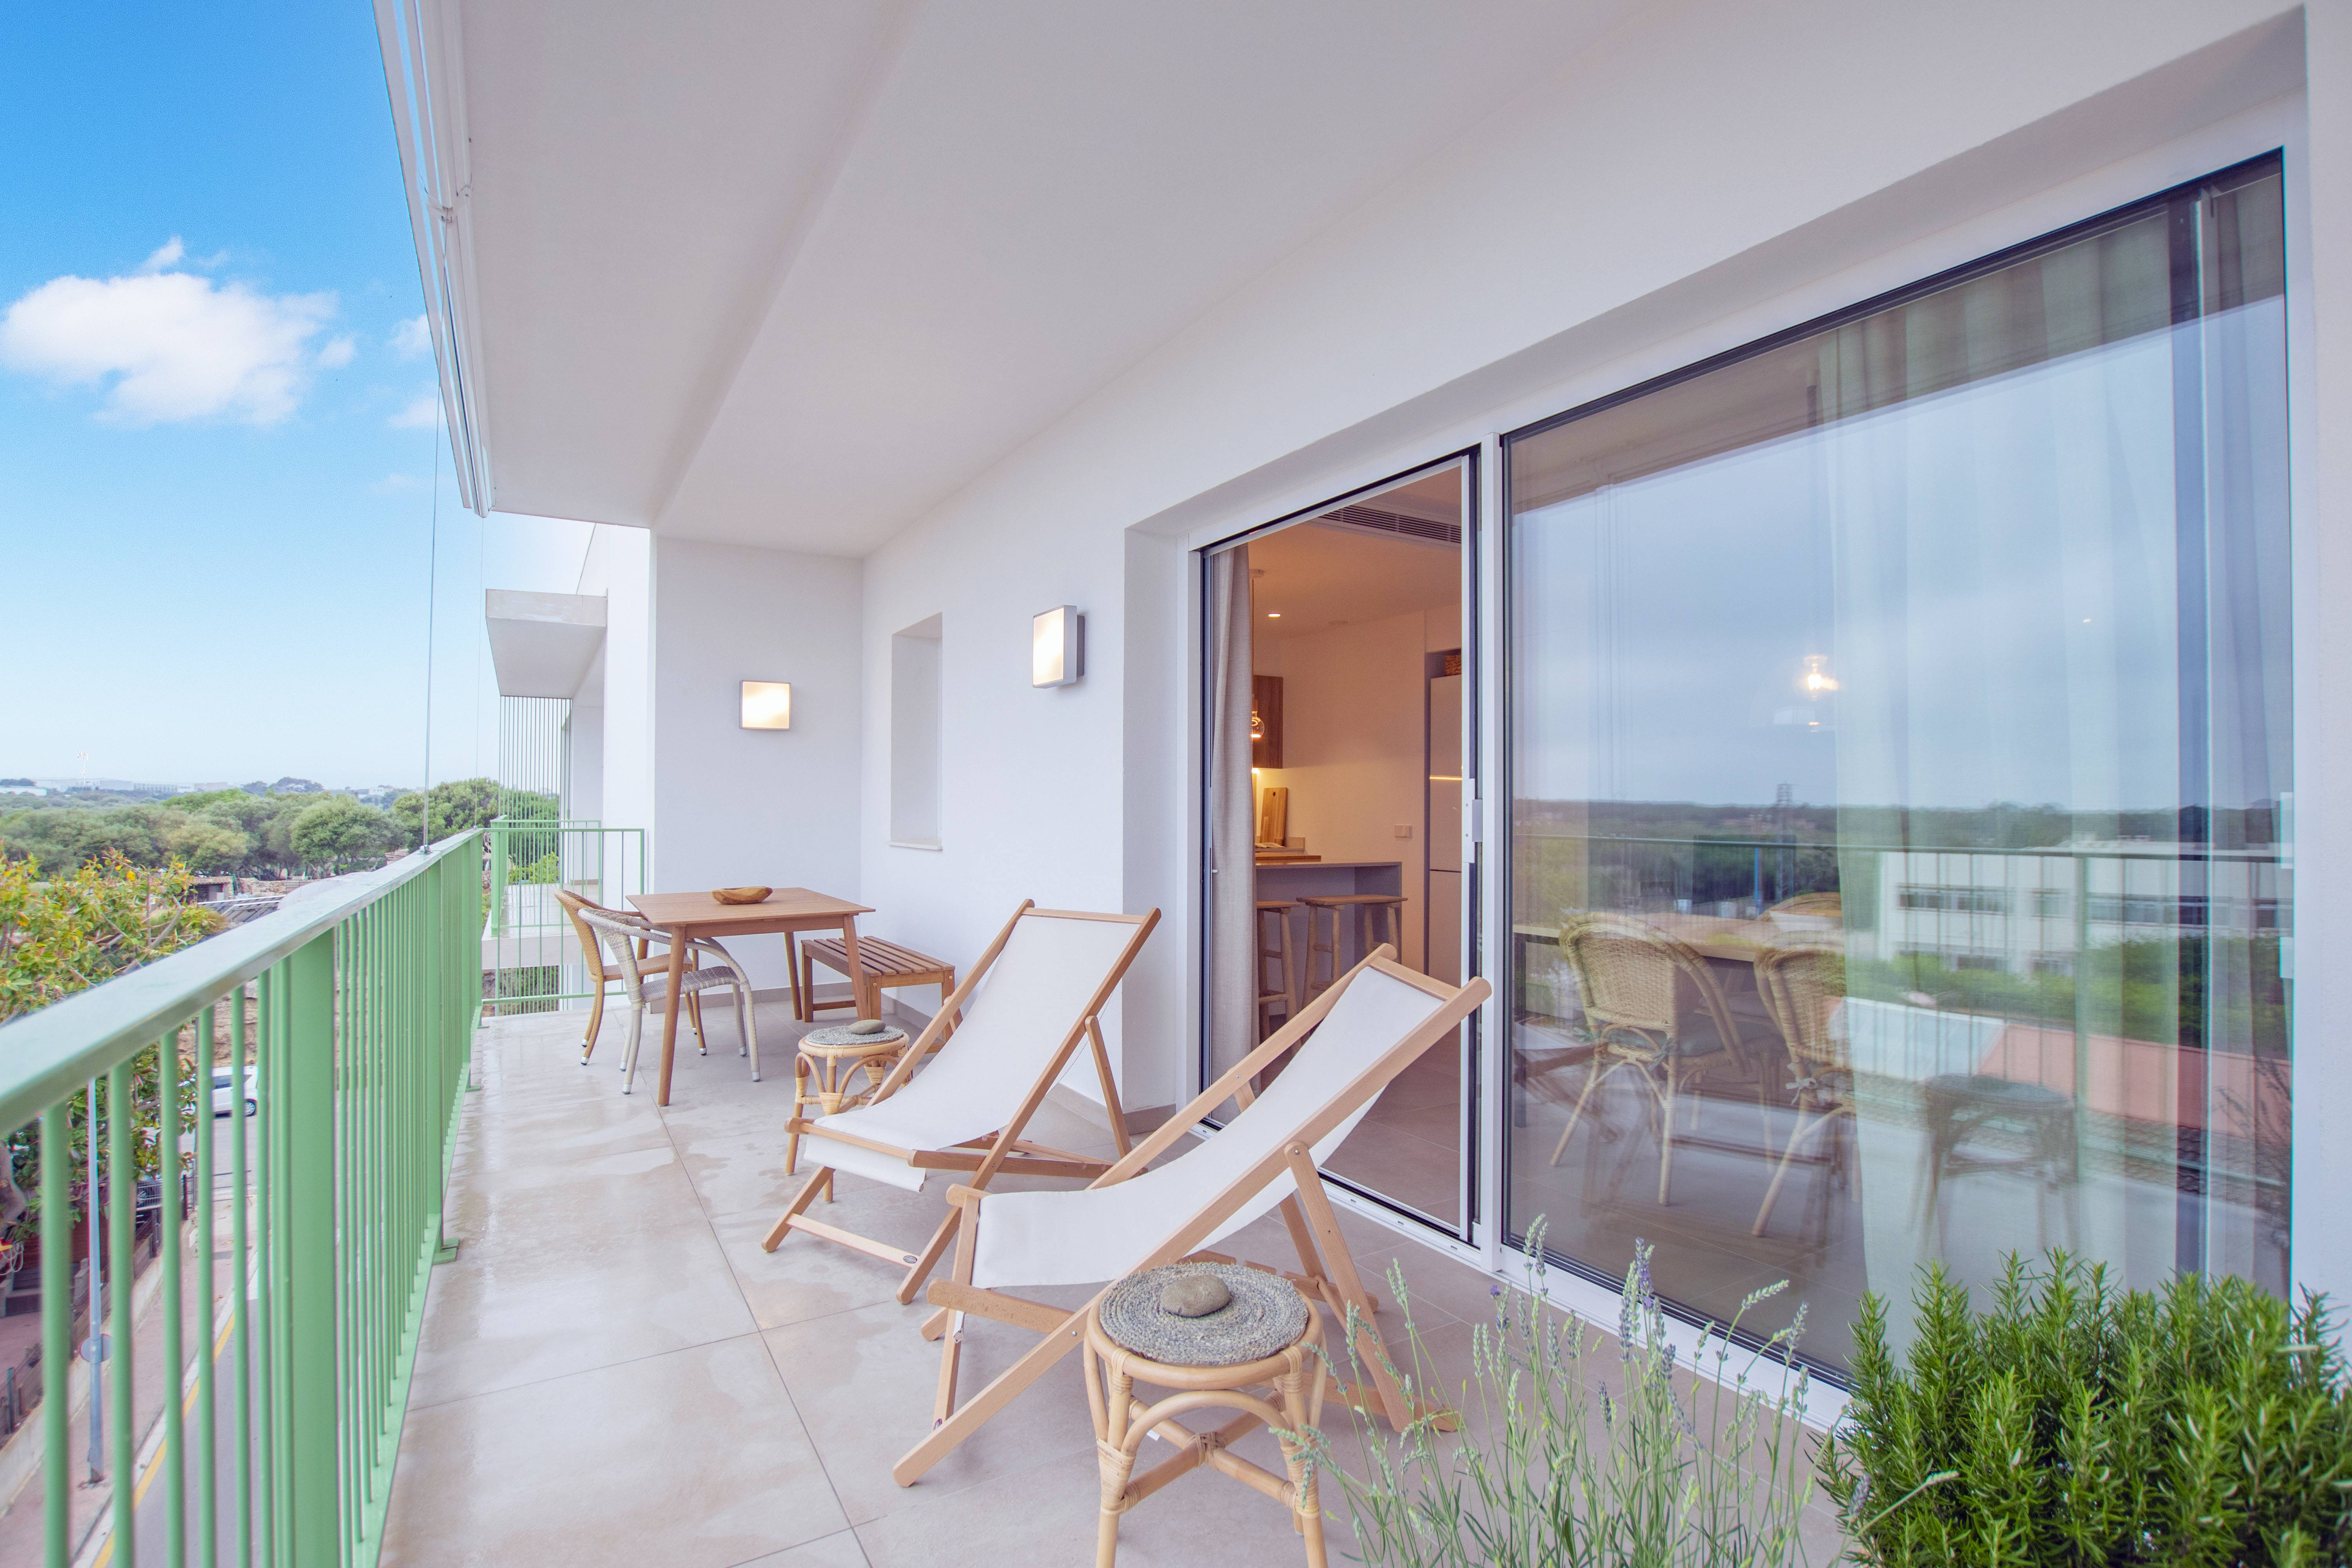 New development - Exciting new development in residential area in Mahon, Menorca